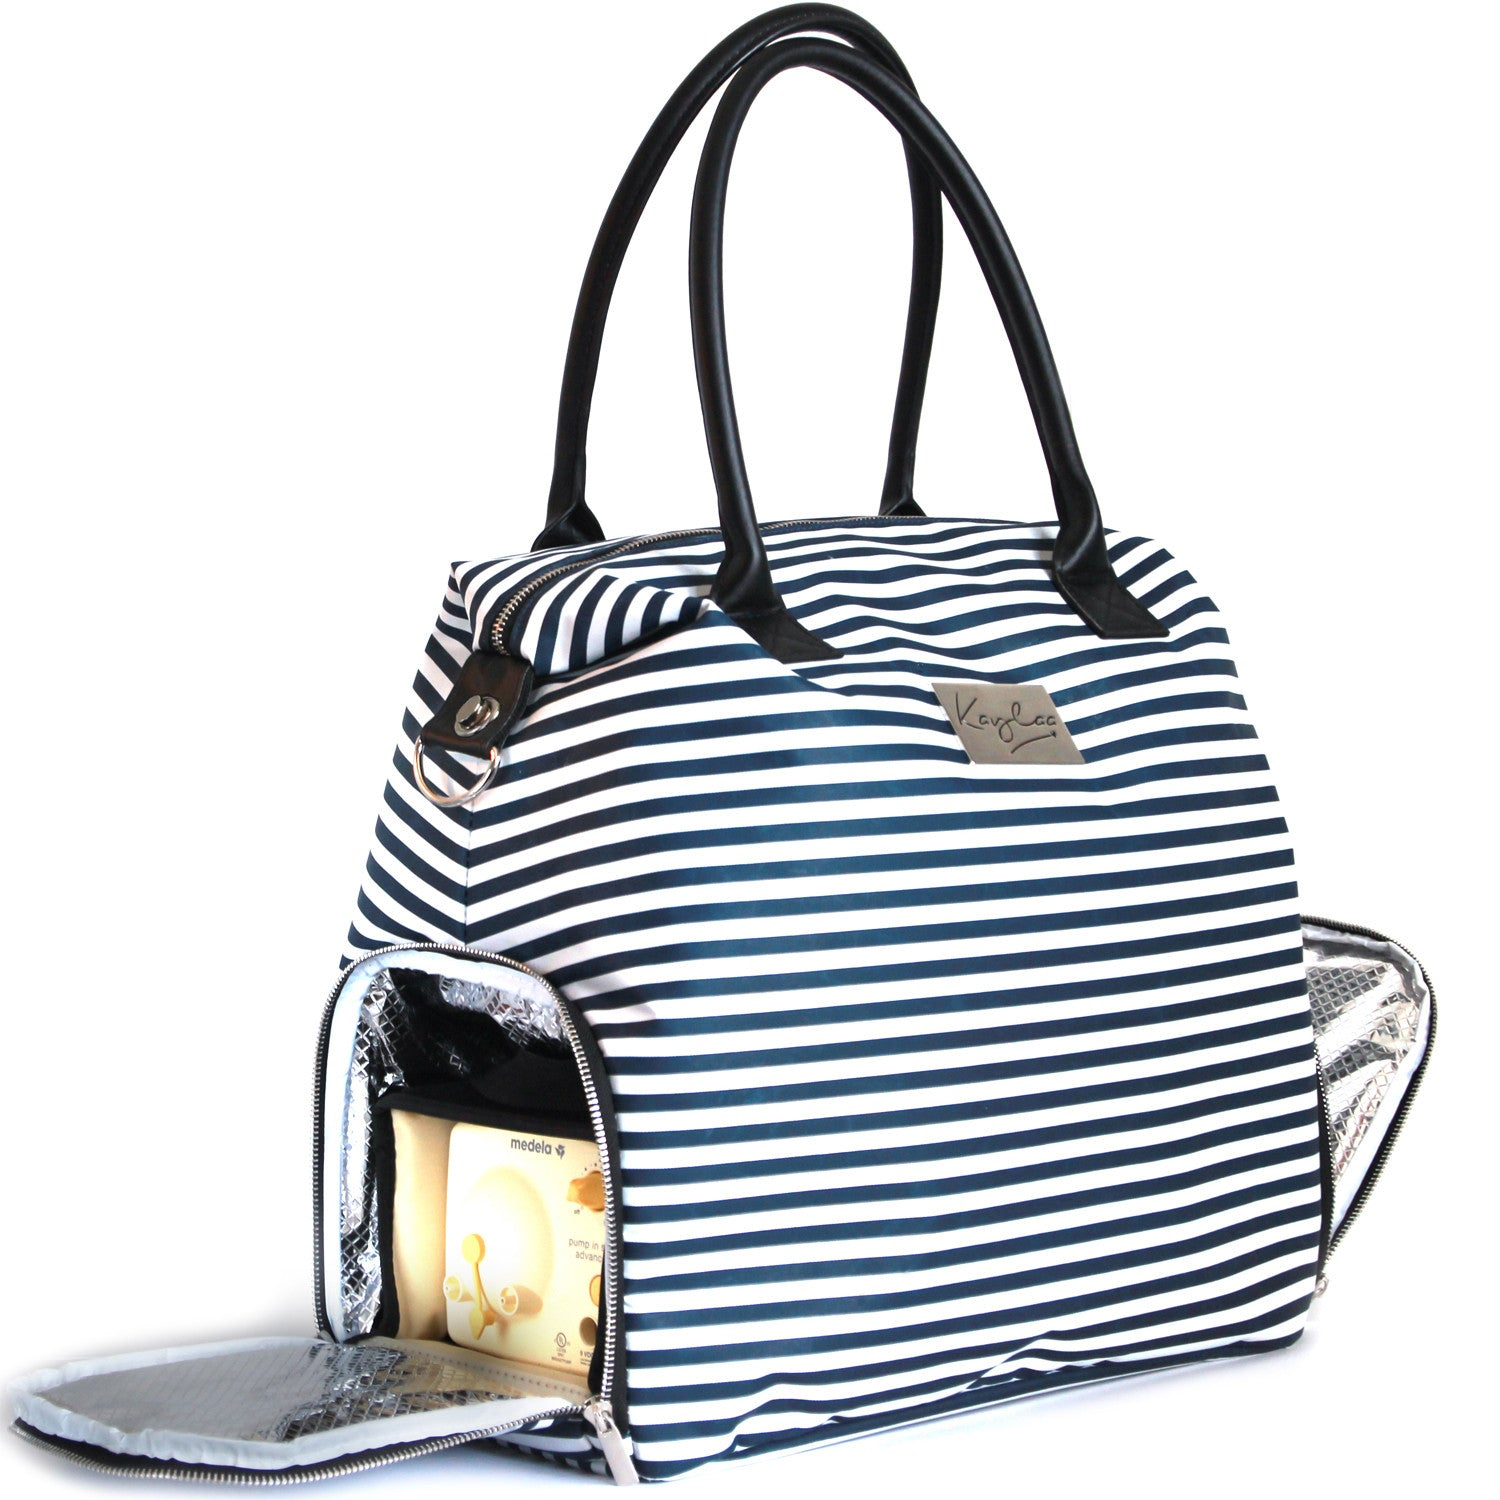 Kaylaa Premium Breast Pump Bag 2017 (Luxury Stripe)